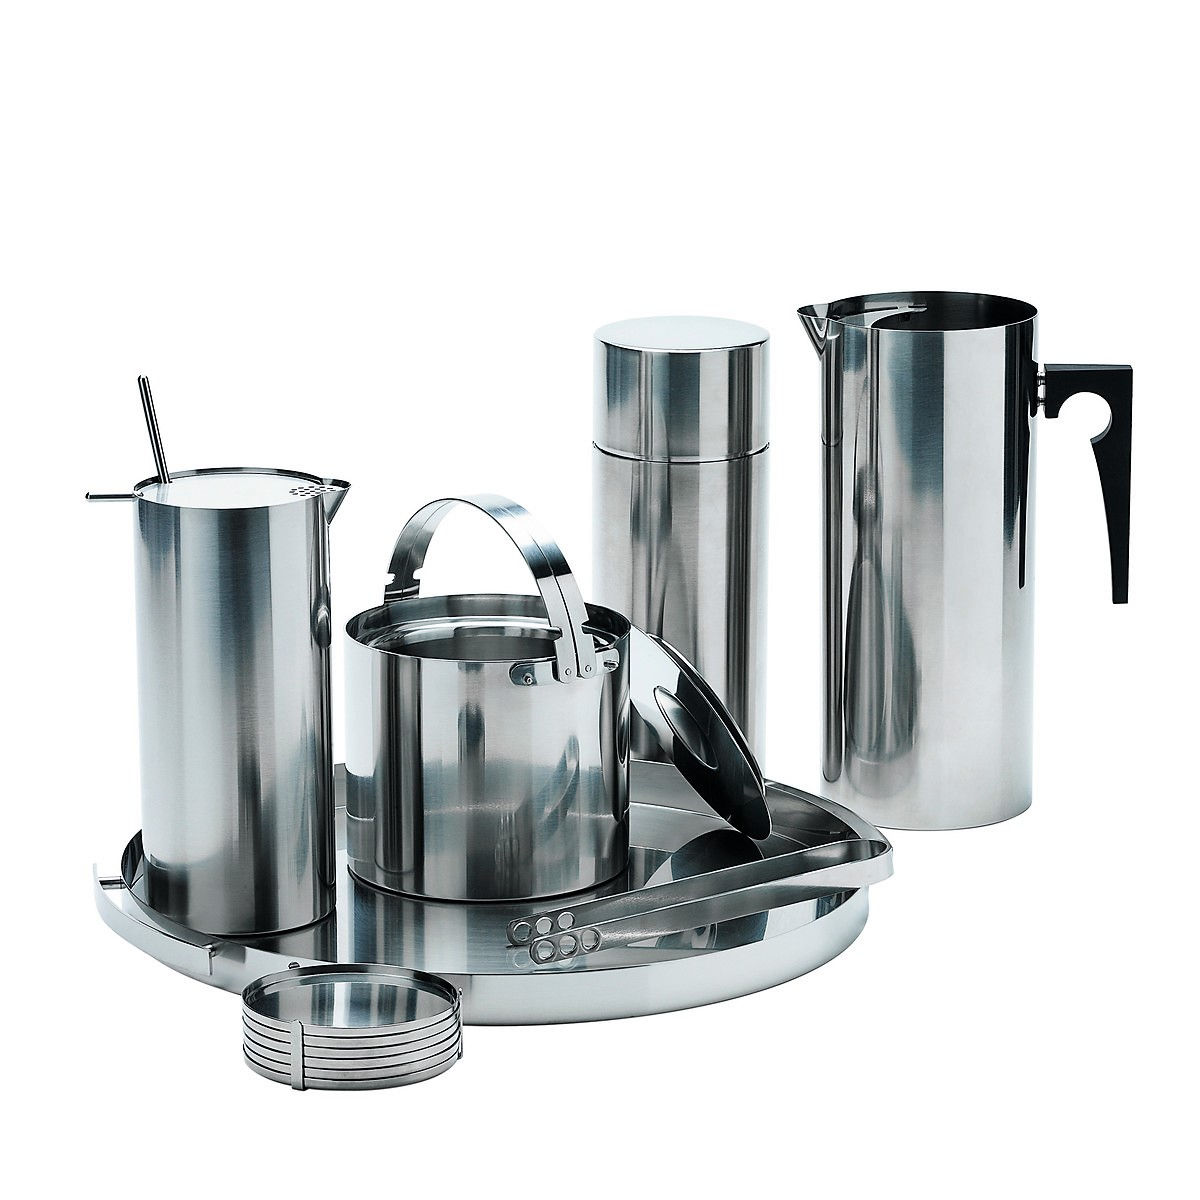 Stelton - Cylinda Cocktail Shaker with spoon, ice bucket, ice tongs, coasters, serving tray stainless steel 2